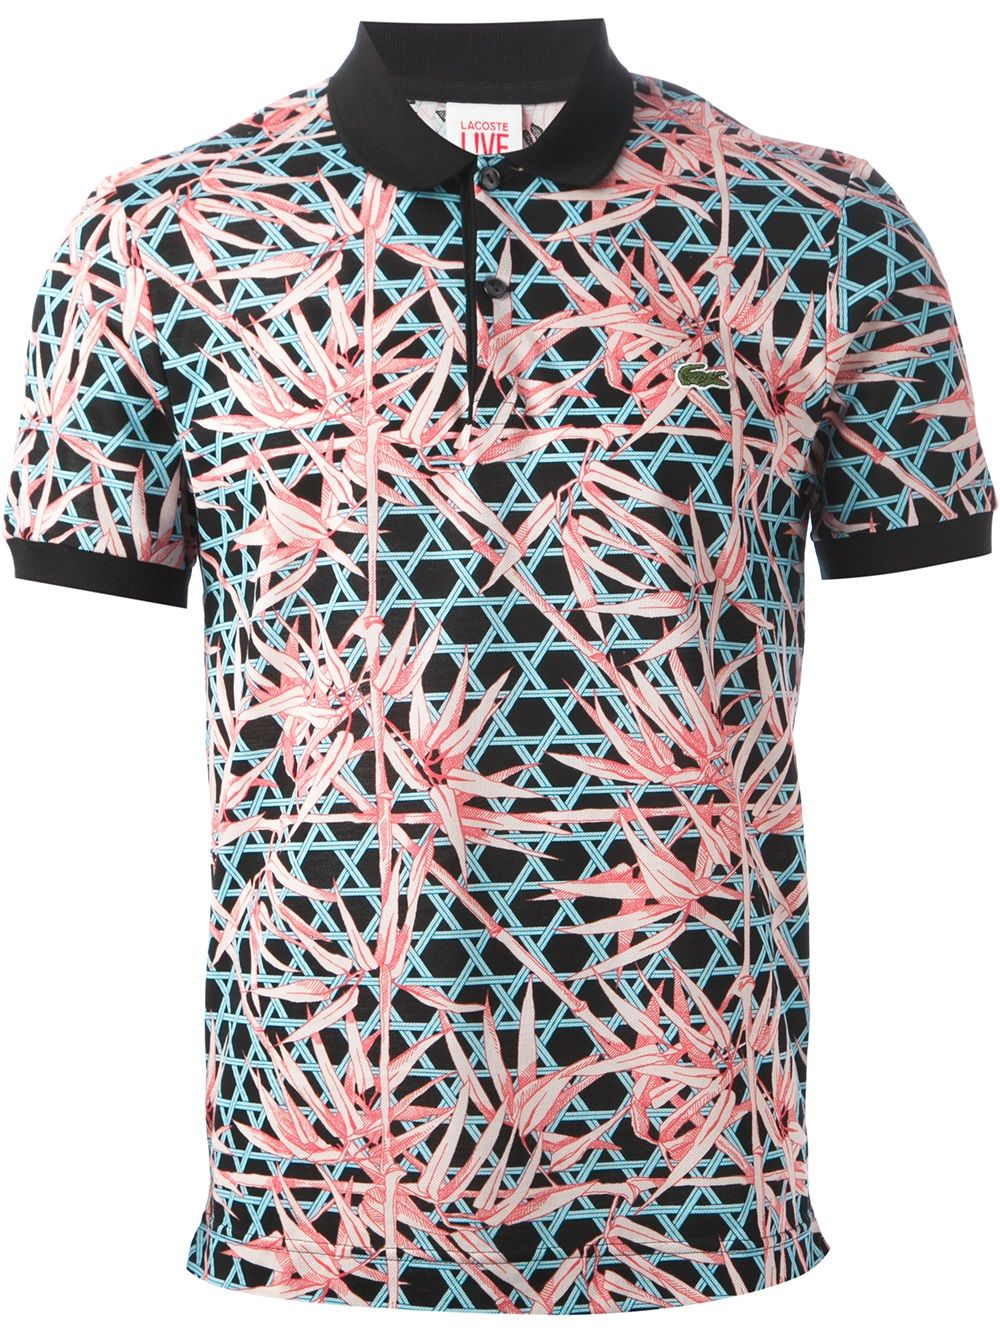 Lacoste is keeping up with the Floral Print Trend with this untypical Polo  Shirt.   Men s Fashion   Street Styles   Young Urban Male   lopezrw   719c55fab1